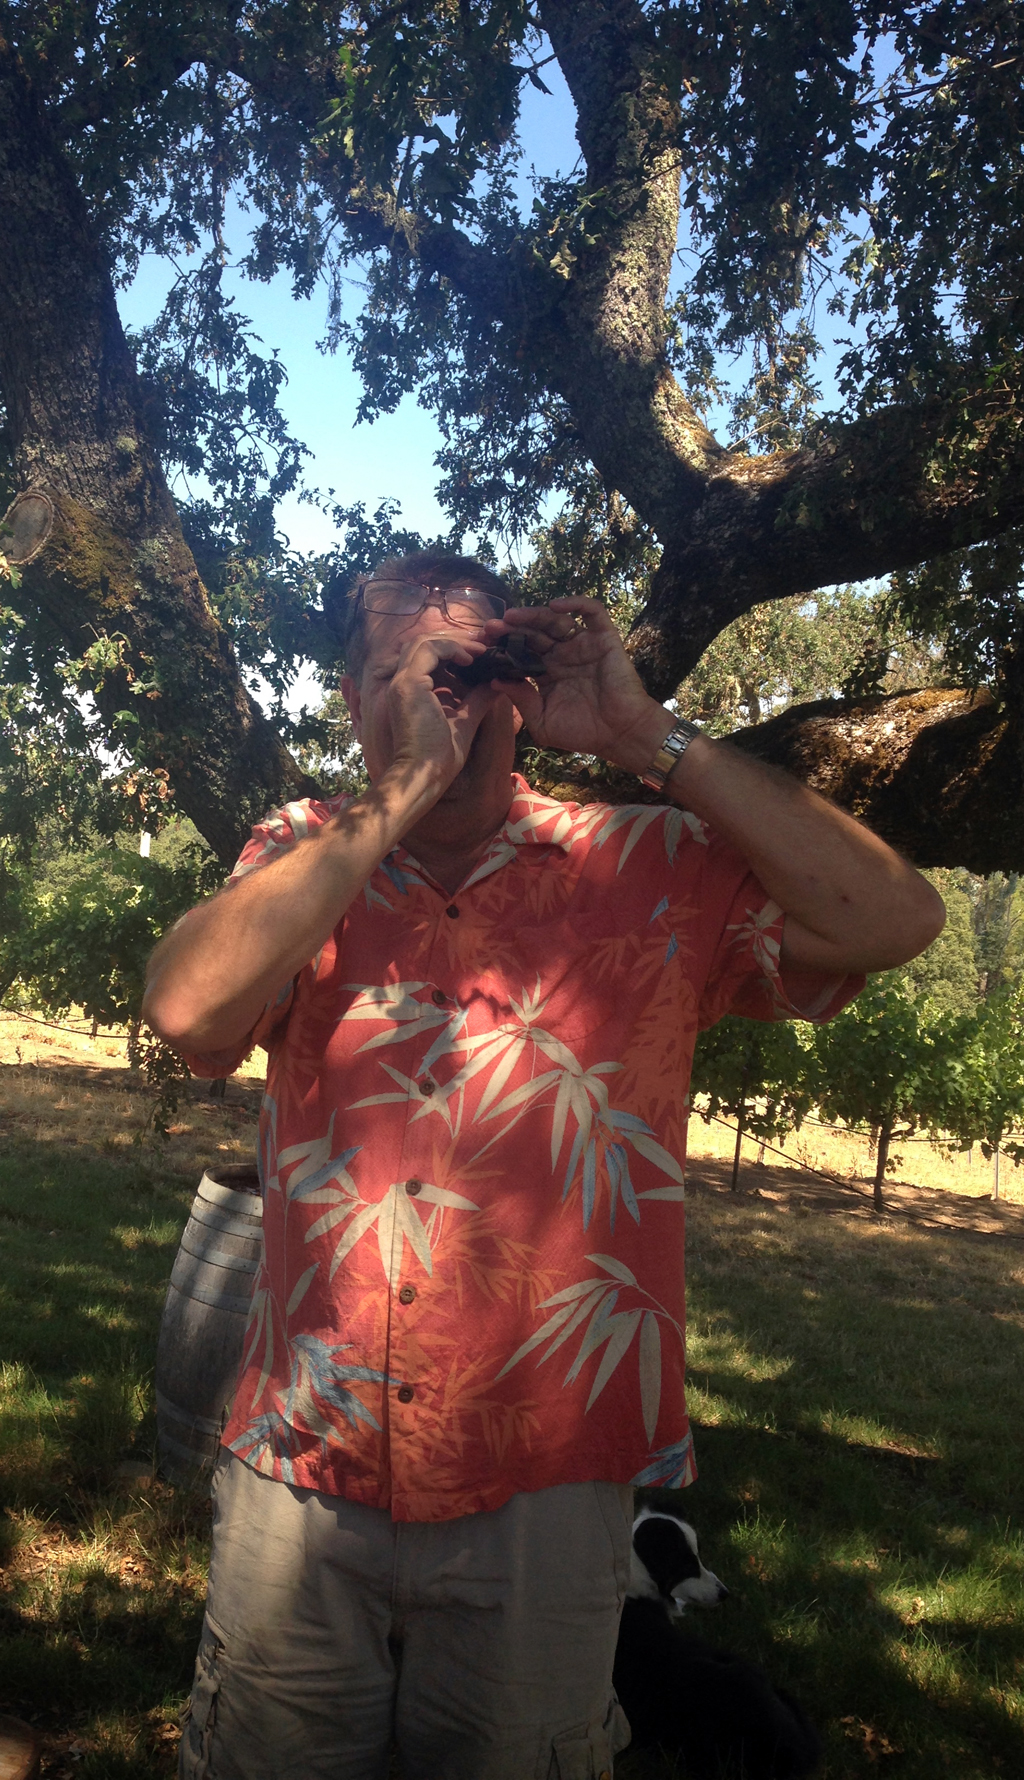 John MacLeod checks the sugar content, or brix level, of the SB grapes with a refractometer.